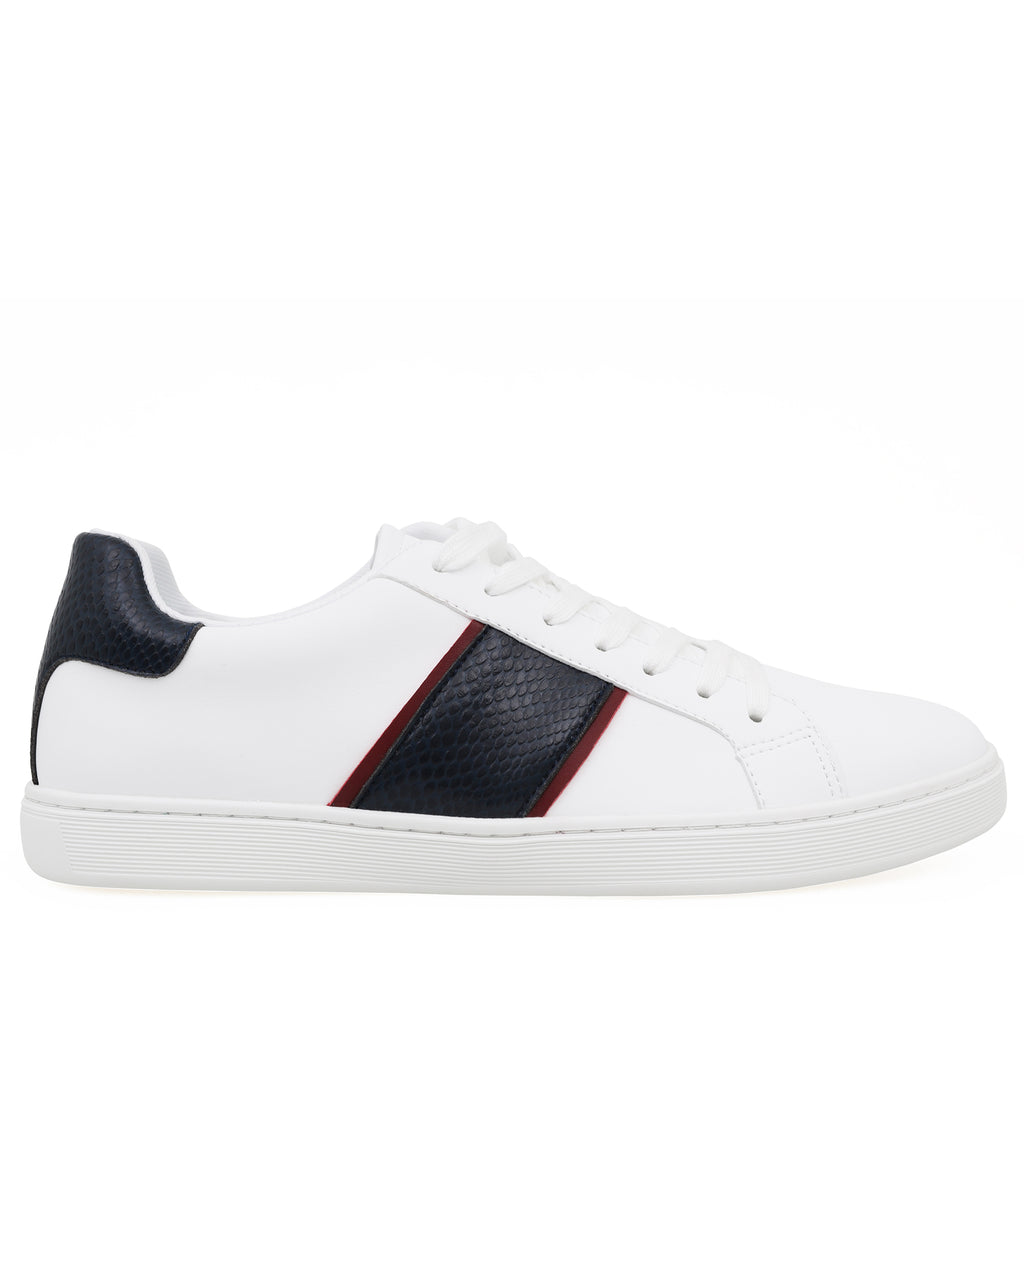 Tomaz TR820M Men's Sneakers (White/Navy/Red)